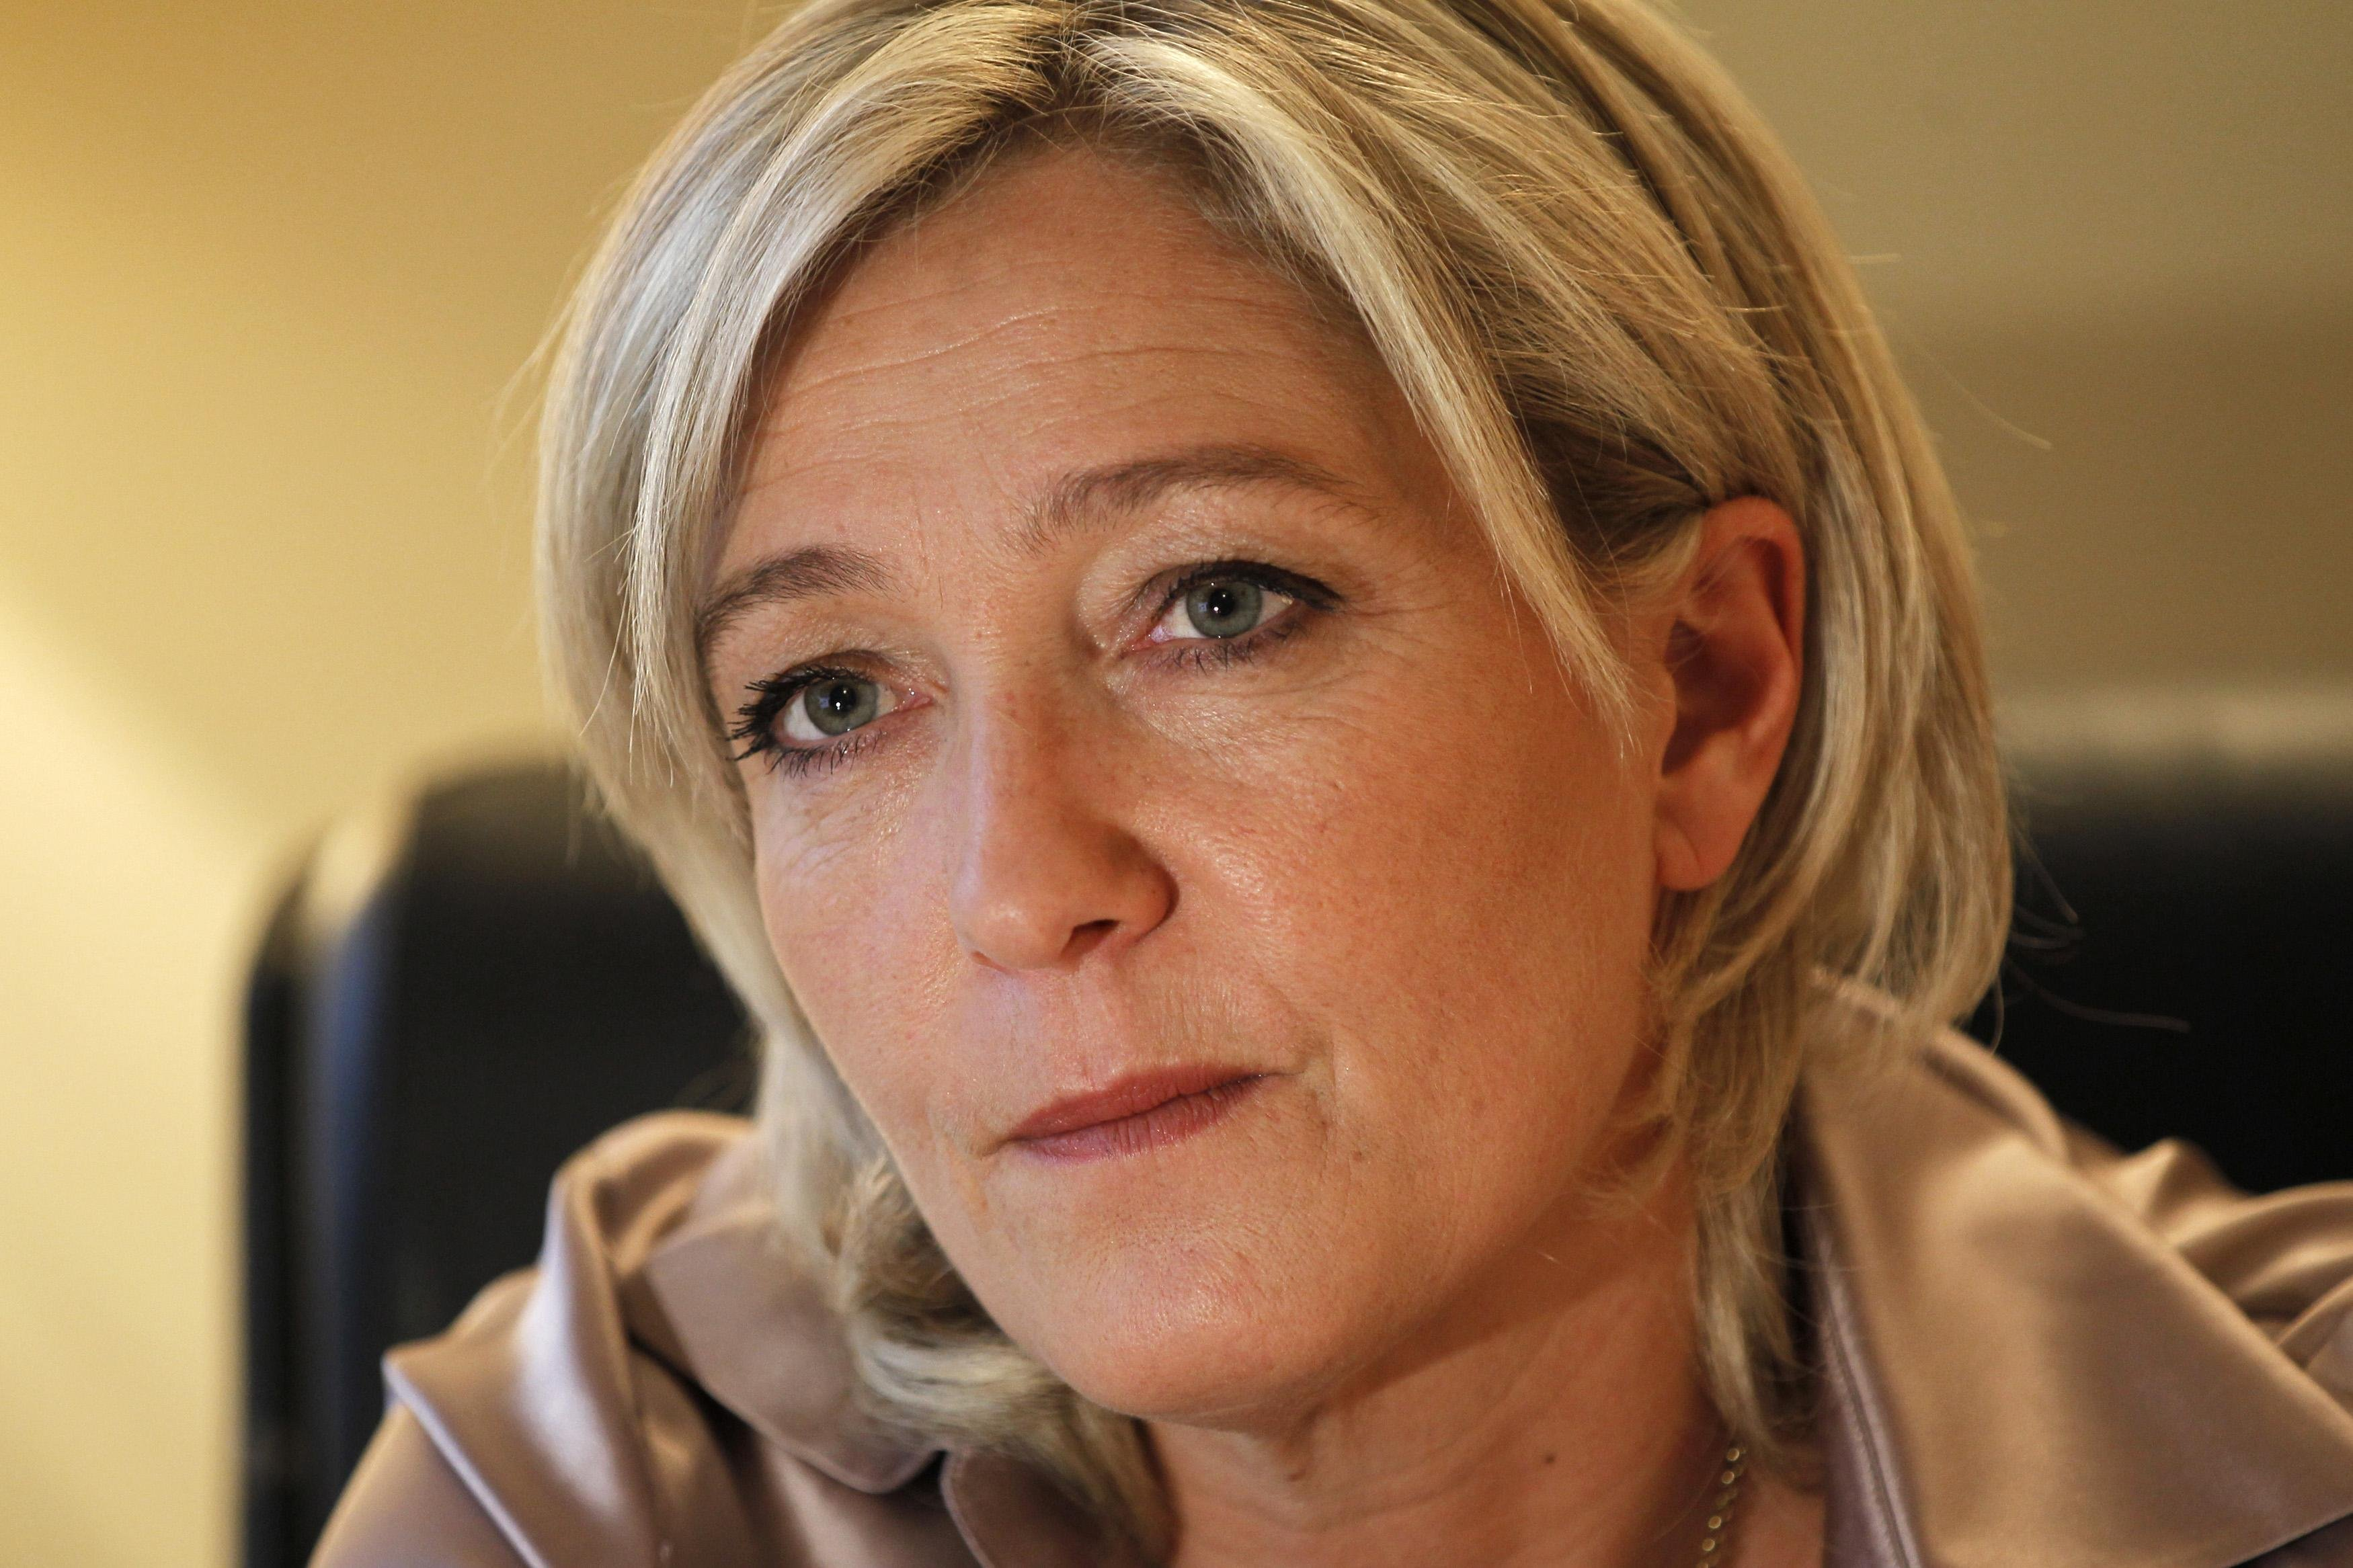 Marine Le Pen, president of France's Front National party (Source: svopi.ru)